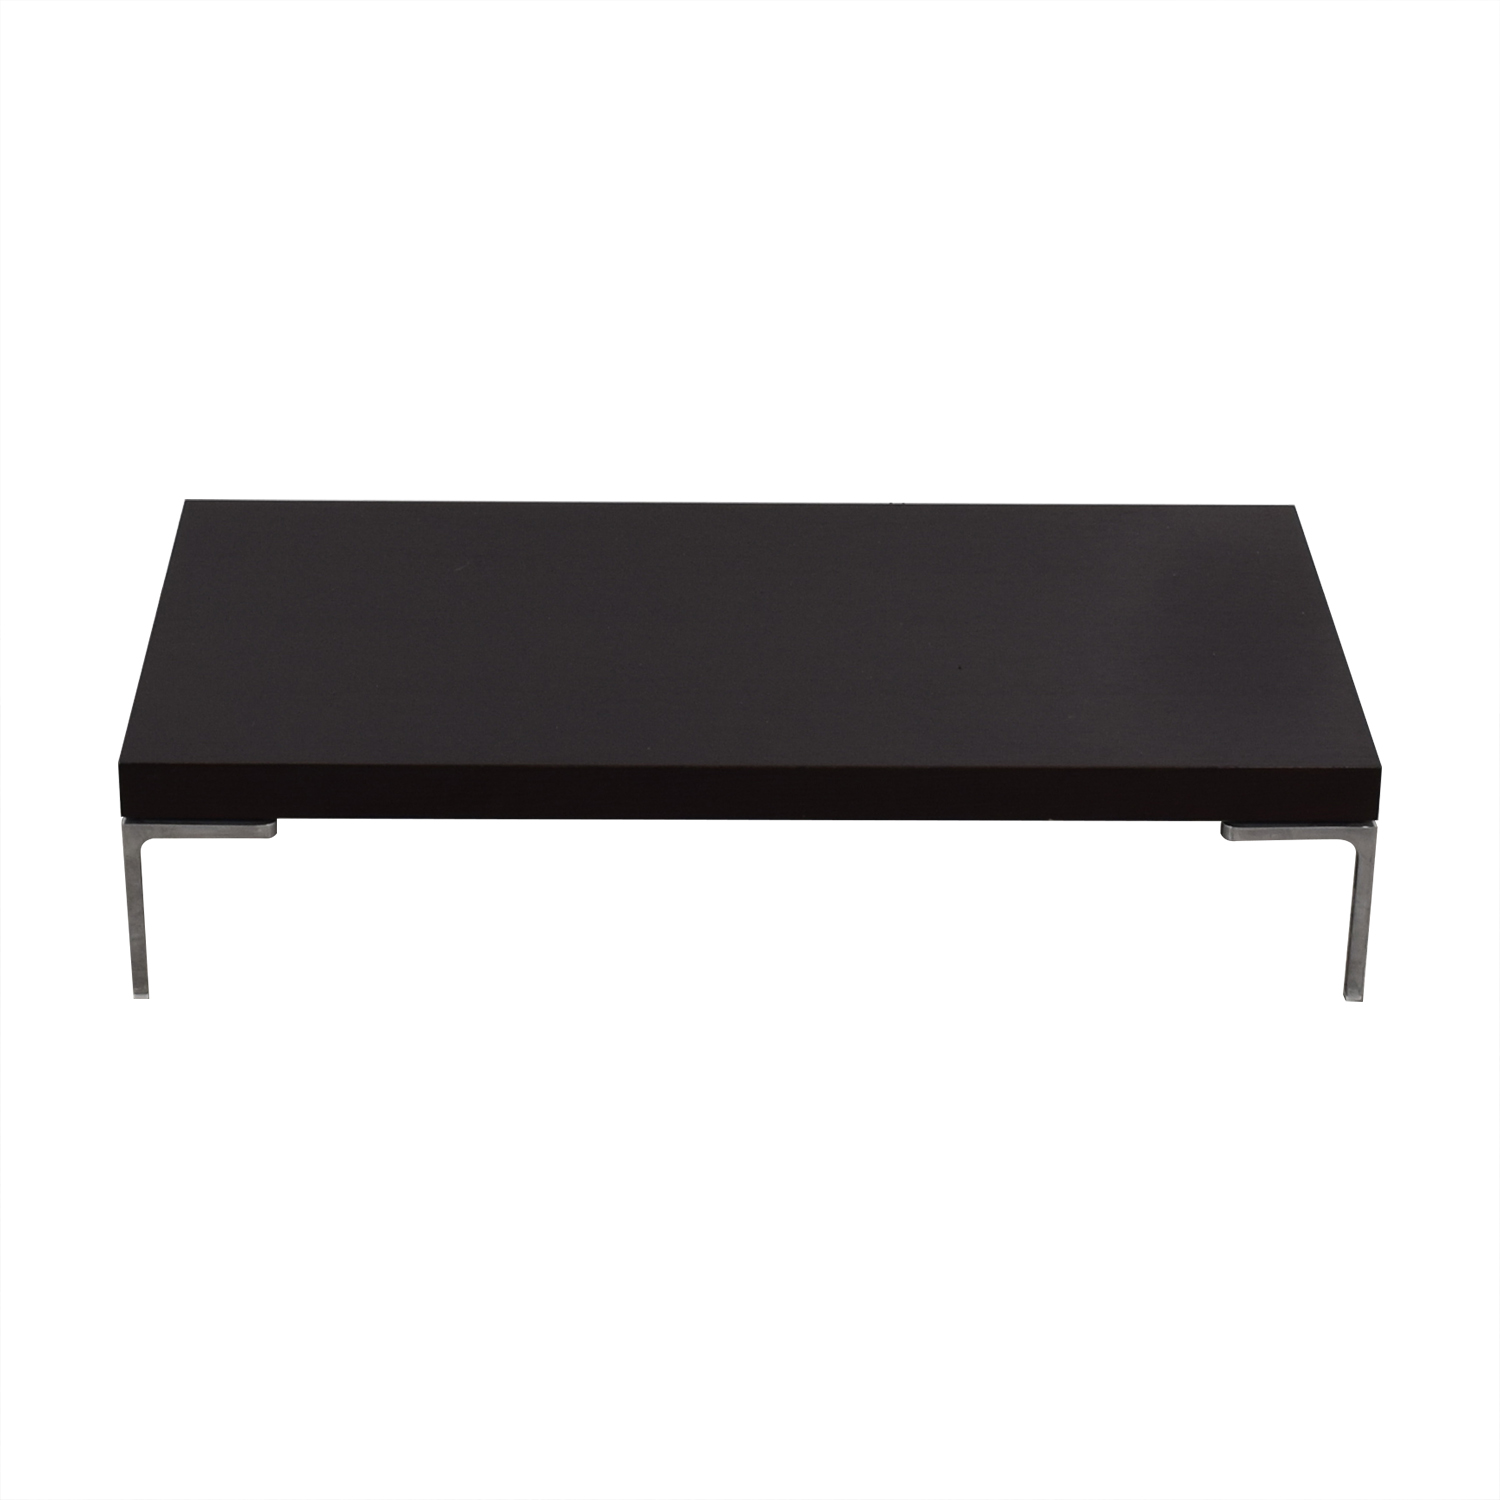 B&B Italia B&B Italia Dark Oak Coffee Table price